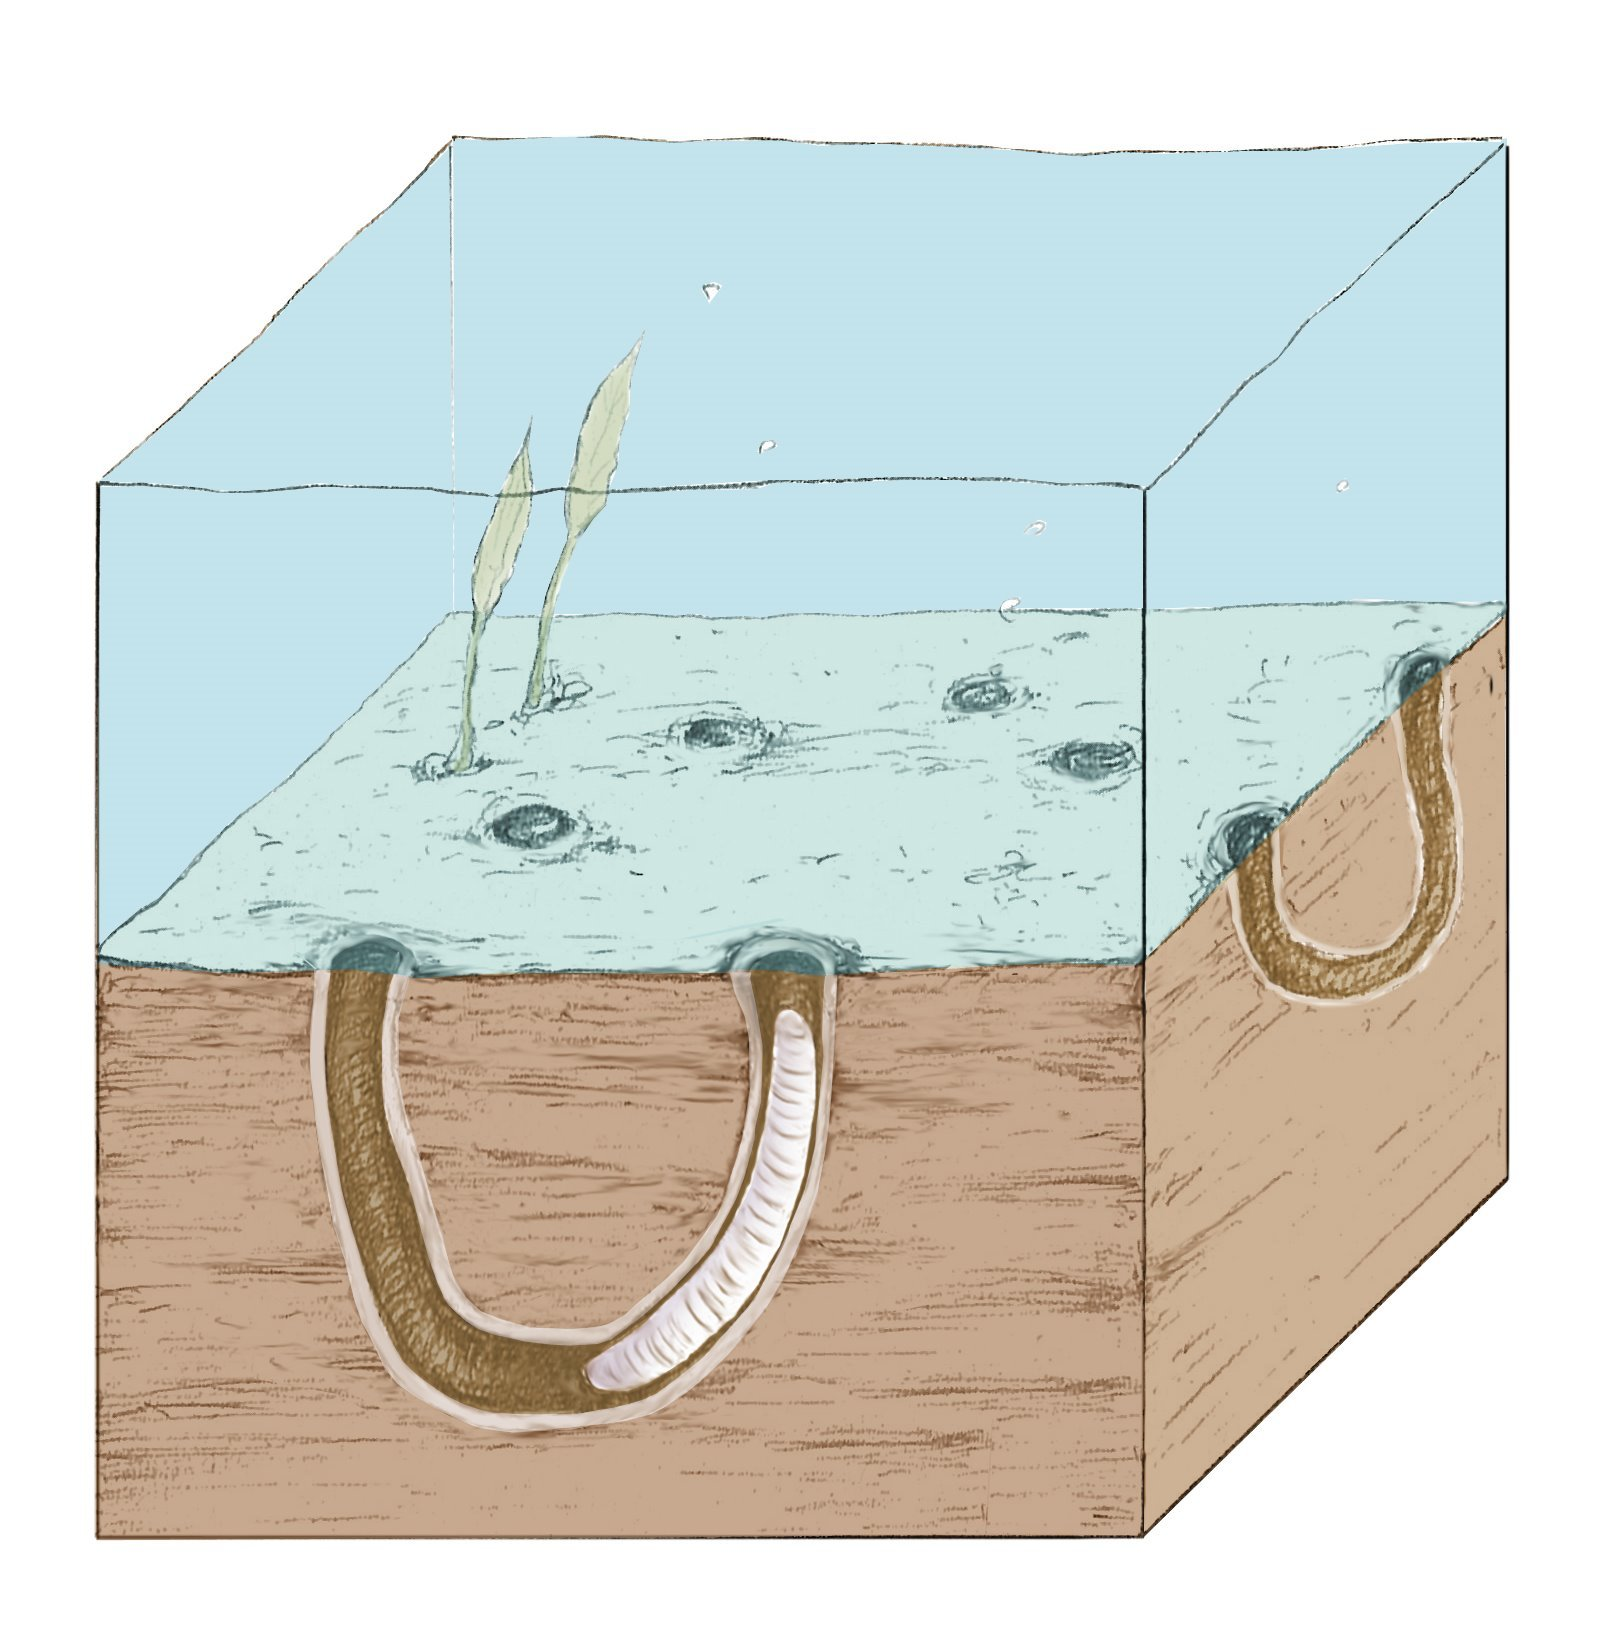 Fossil clipart trace fossil. Digging up the precambrian